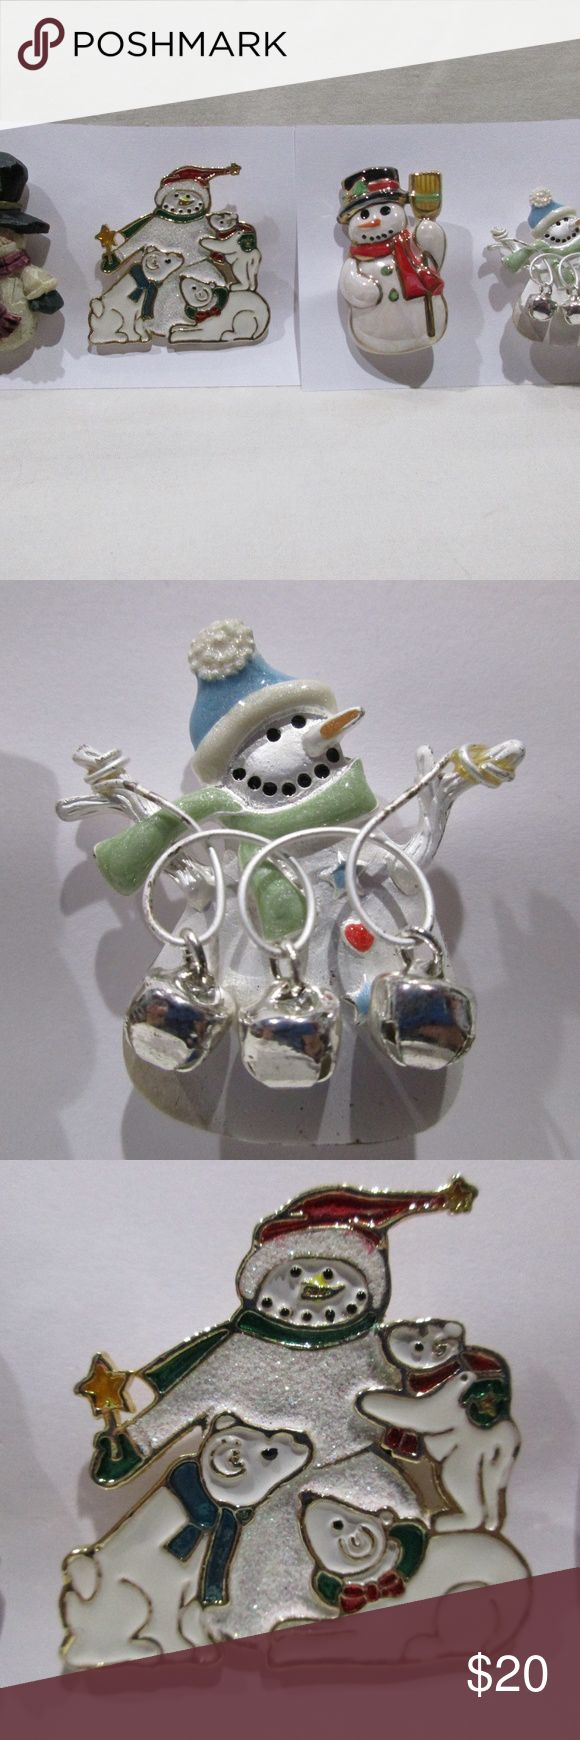 Lot of 4 Assorted Snowman Pin Brooches Lot of 4 - Assorted Snowman or Snowmen Pi...